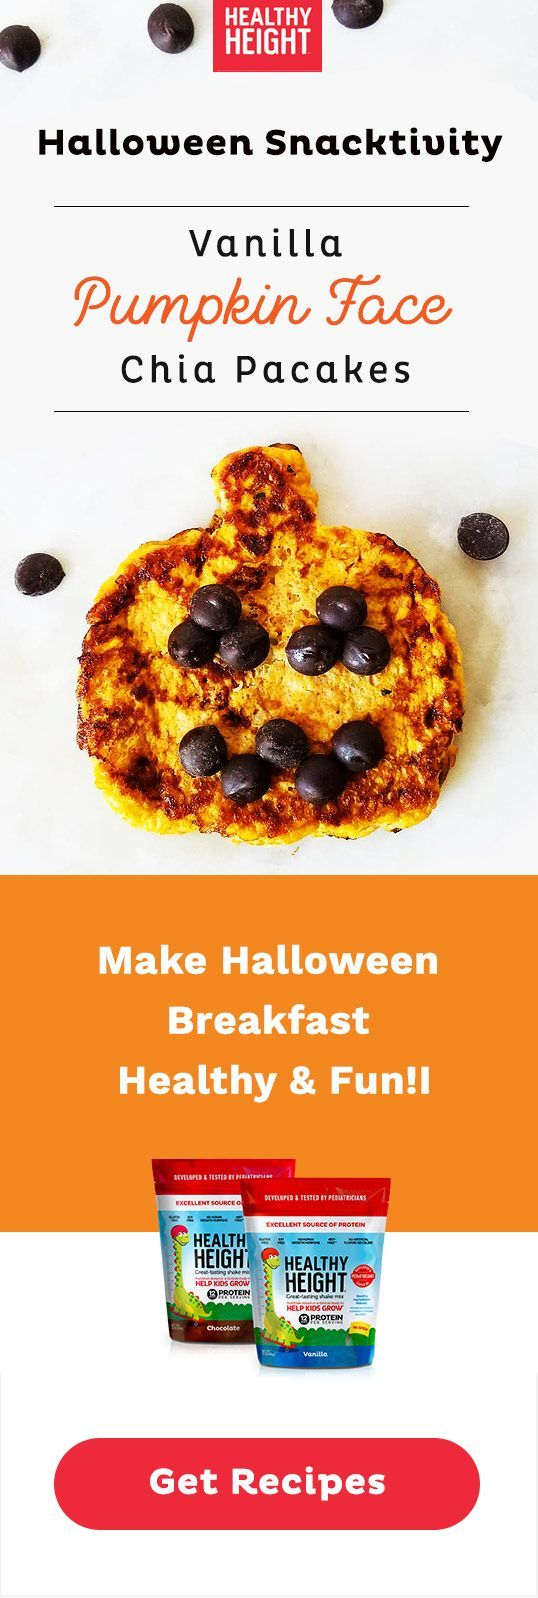 Halloween Pumpkin Pancakes for Kids | Healthy Height #halloweenbreakfastforkids Whip up these delicious, nutritious pumpkin pancakes with just 5 ingredients (plus chocolate chips for pumpkin face decorations). Turn it into a snacktivity for seasonal fun, or add to your Halloween breakfast for a healthy start to the day. This recipe gets your kiddo involved in the Halloween fun and teaches them good nutrition! Try these vanilla pumpkin chia pancakes created by Hannah, mom behind @hannahfromcalifo #halloweenbreakfastforkids